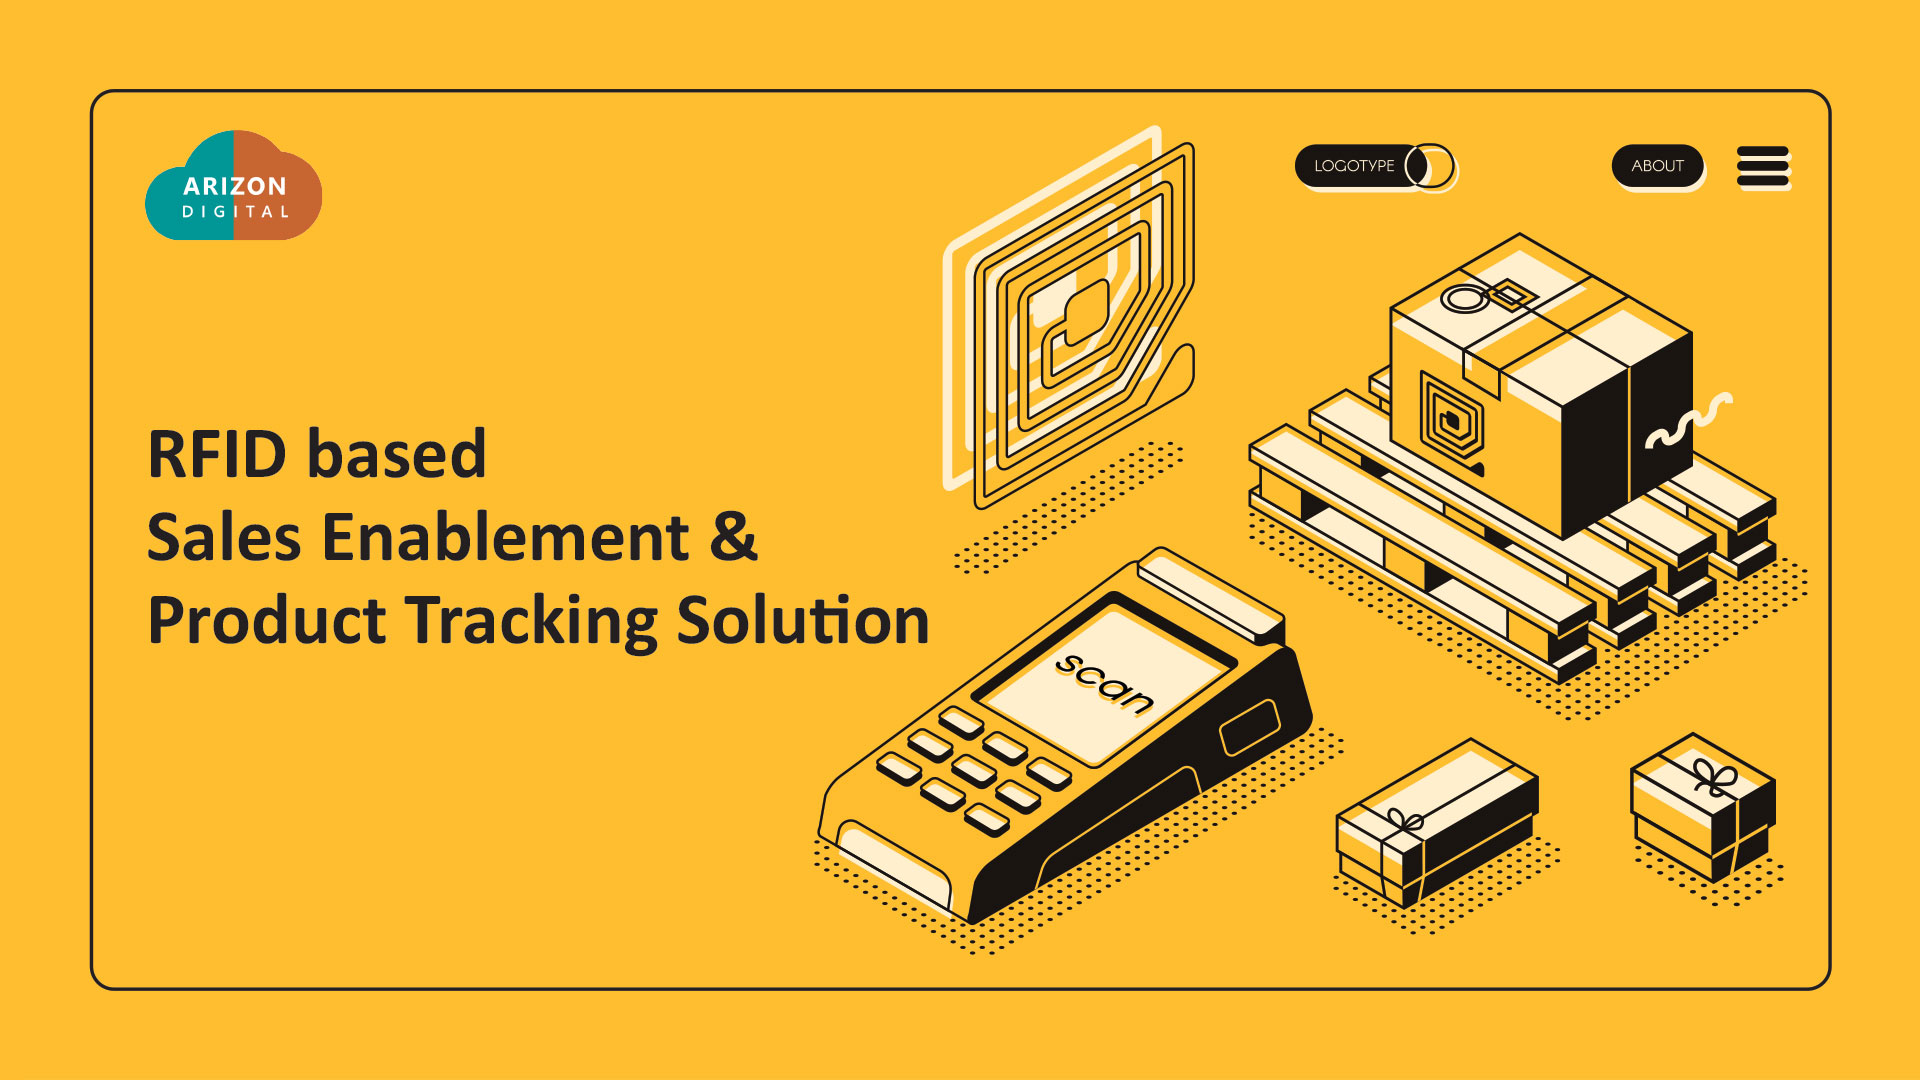 RFID based sales enablement & product tracking solution